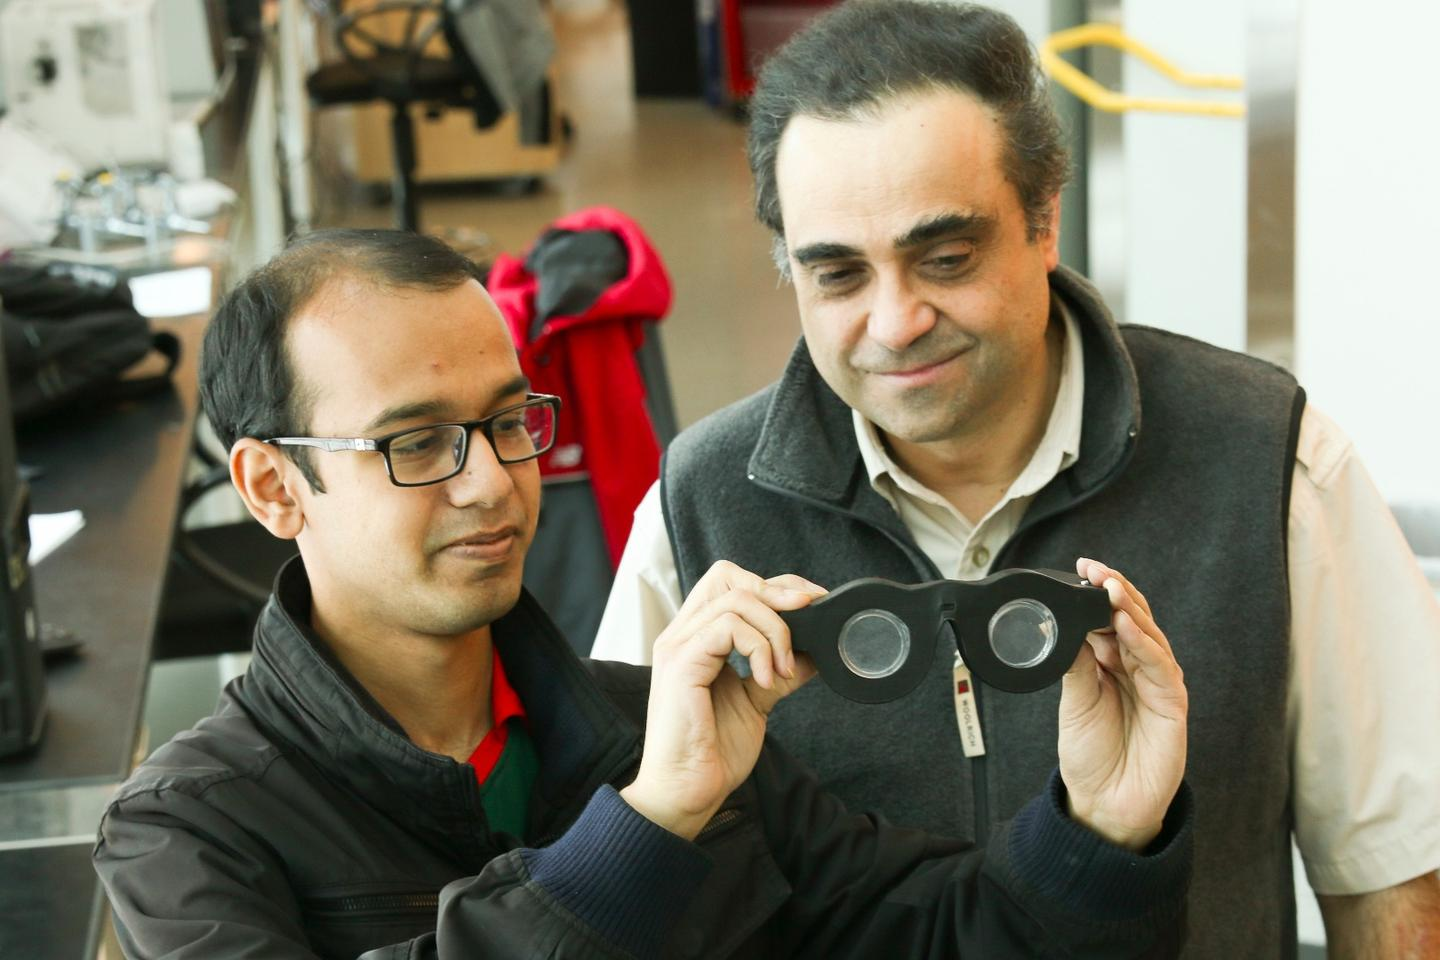 Carlos Mastrangelo (right) and Nazmul Hasan with the prototype glasses